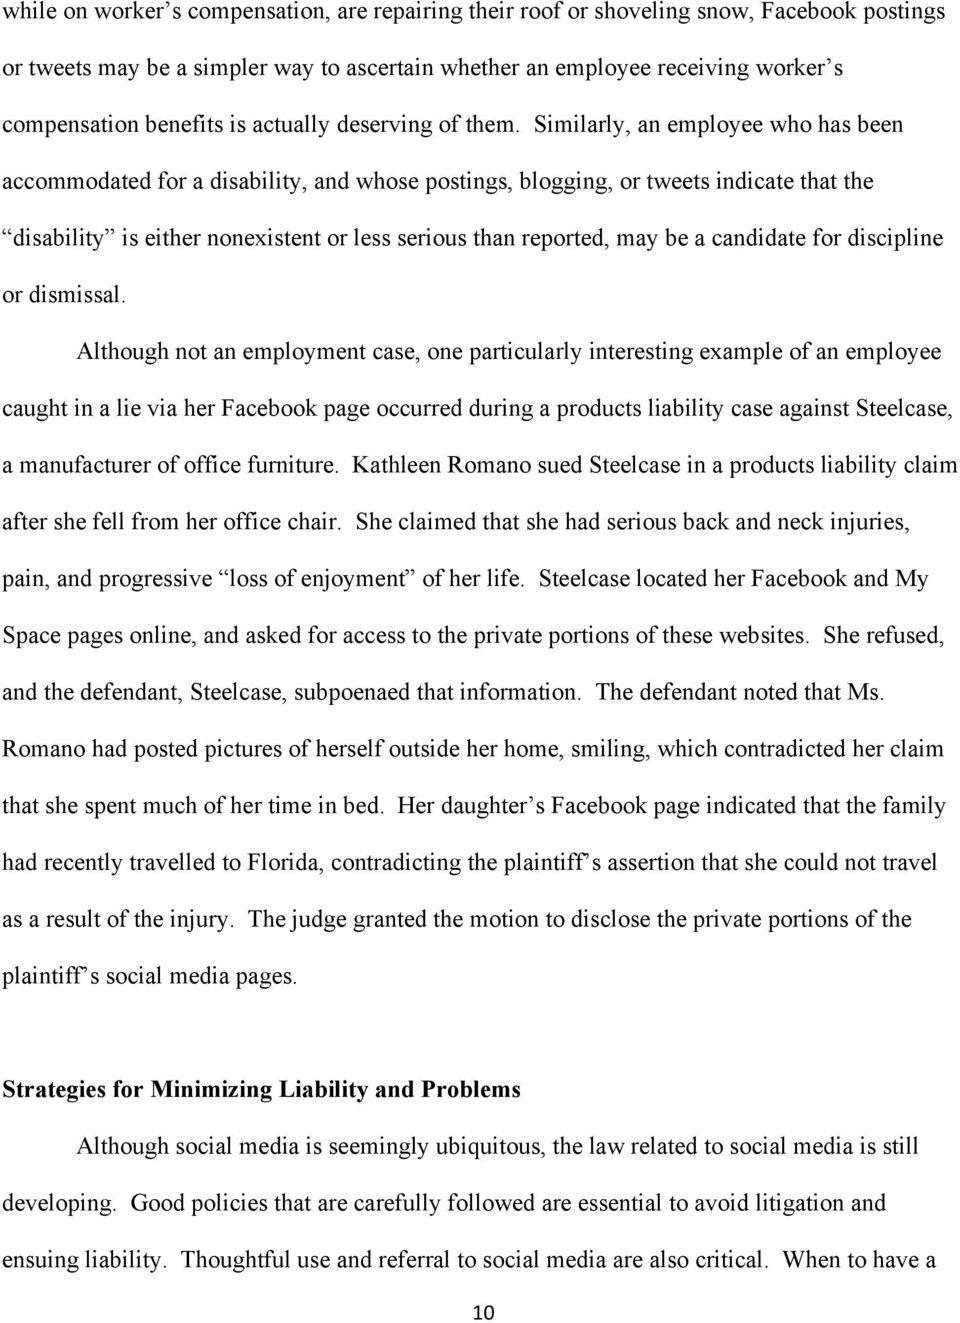 Similarly, an employee who has been accommodated for a disability, and whose postings, blogging, or tweets indicate that the disability is either nonexistent or less serious than reported, may be a